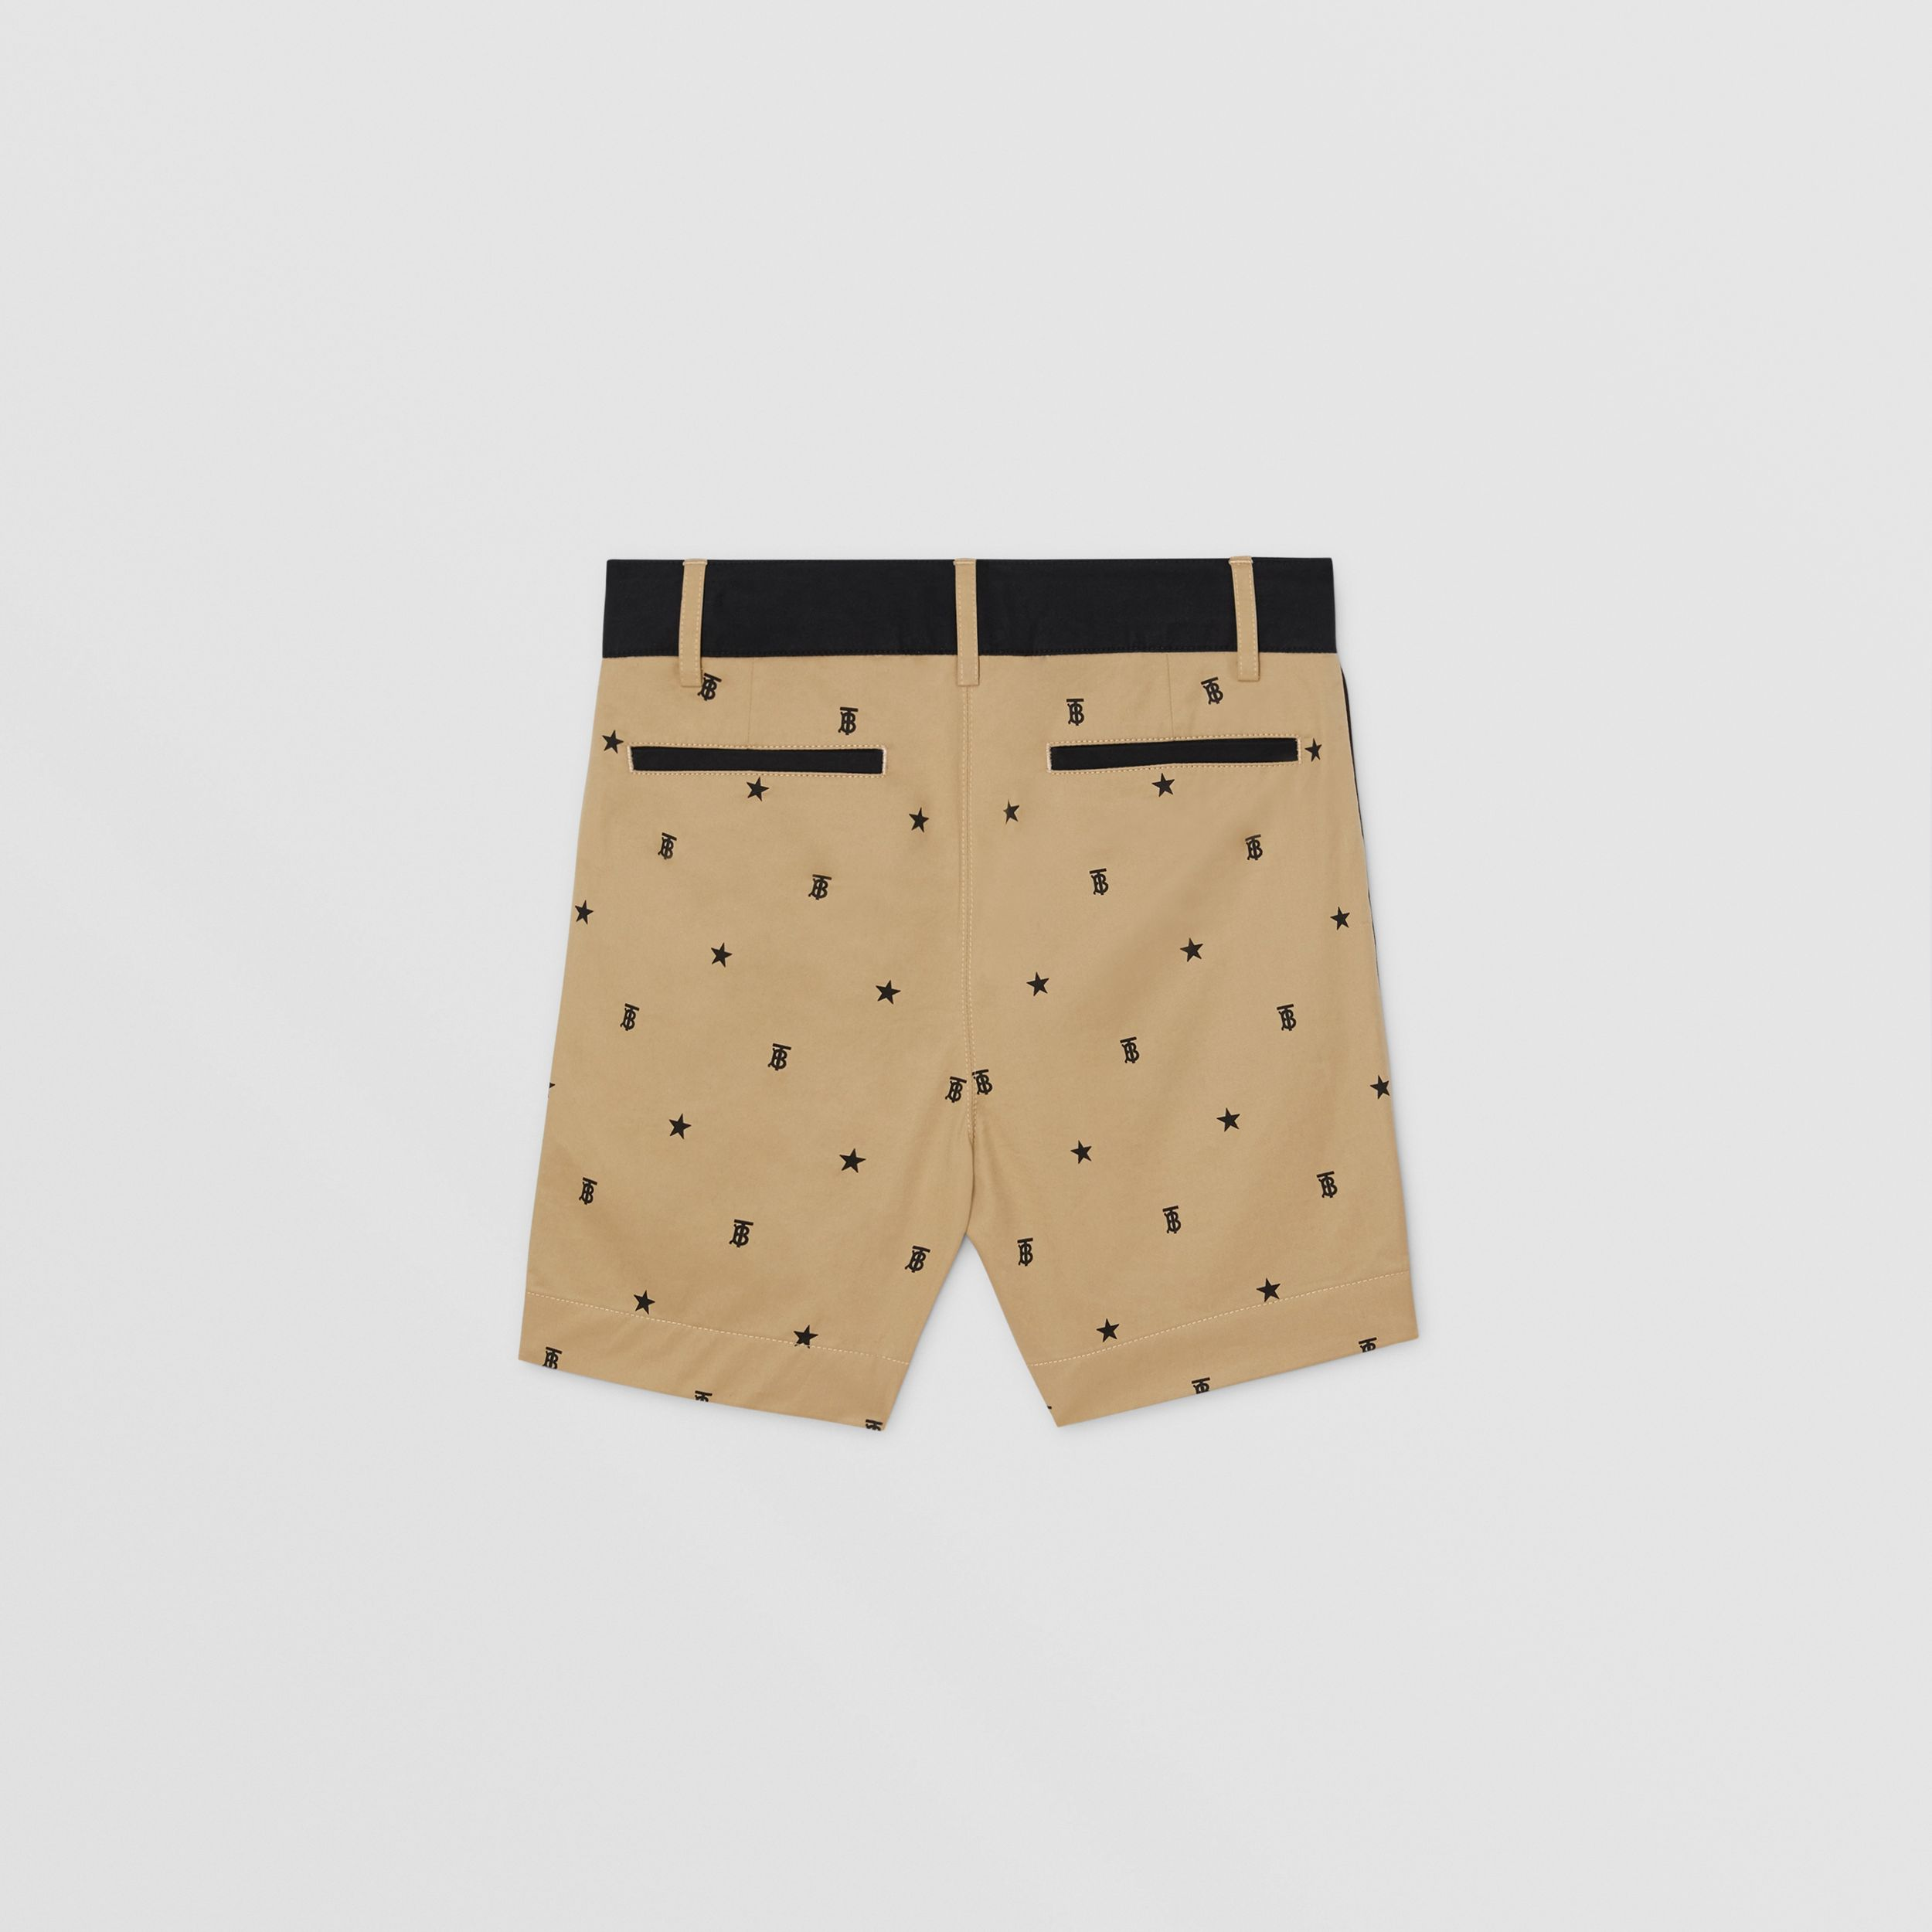 Star and Monogram Motif Tailored Shorts in Sand | Burberry - 4